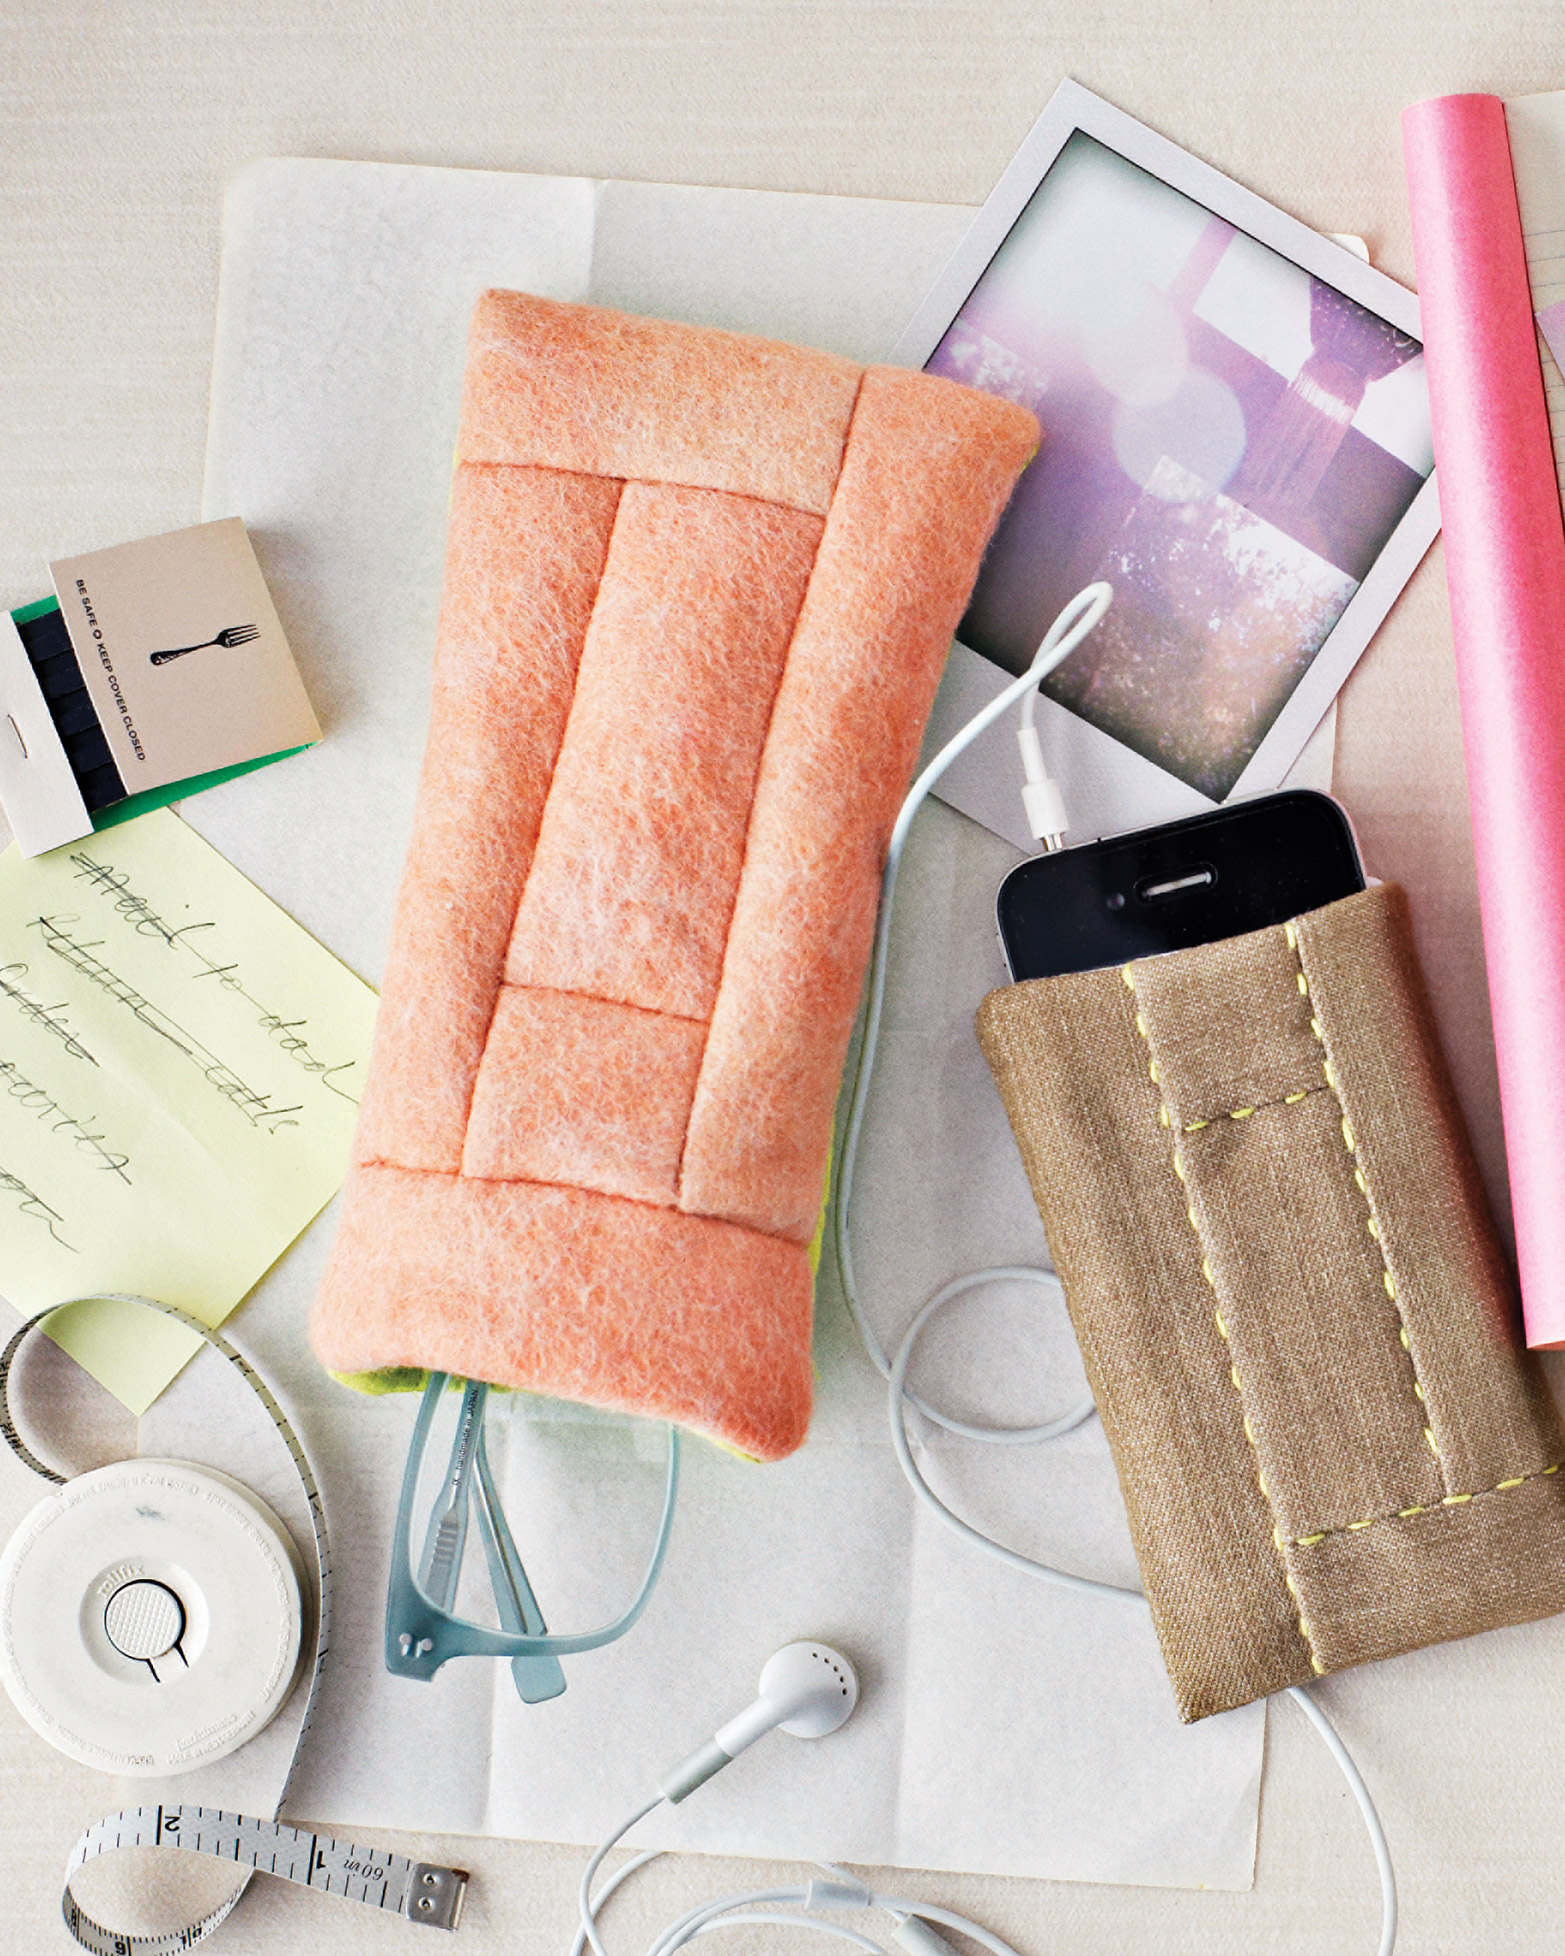 10 Apps Every Knitter Should Have